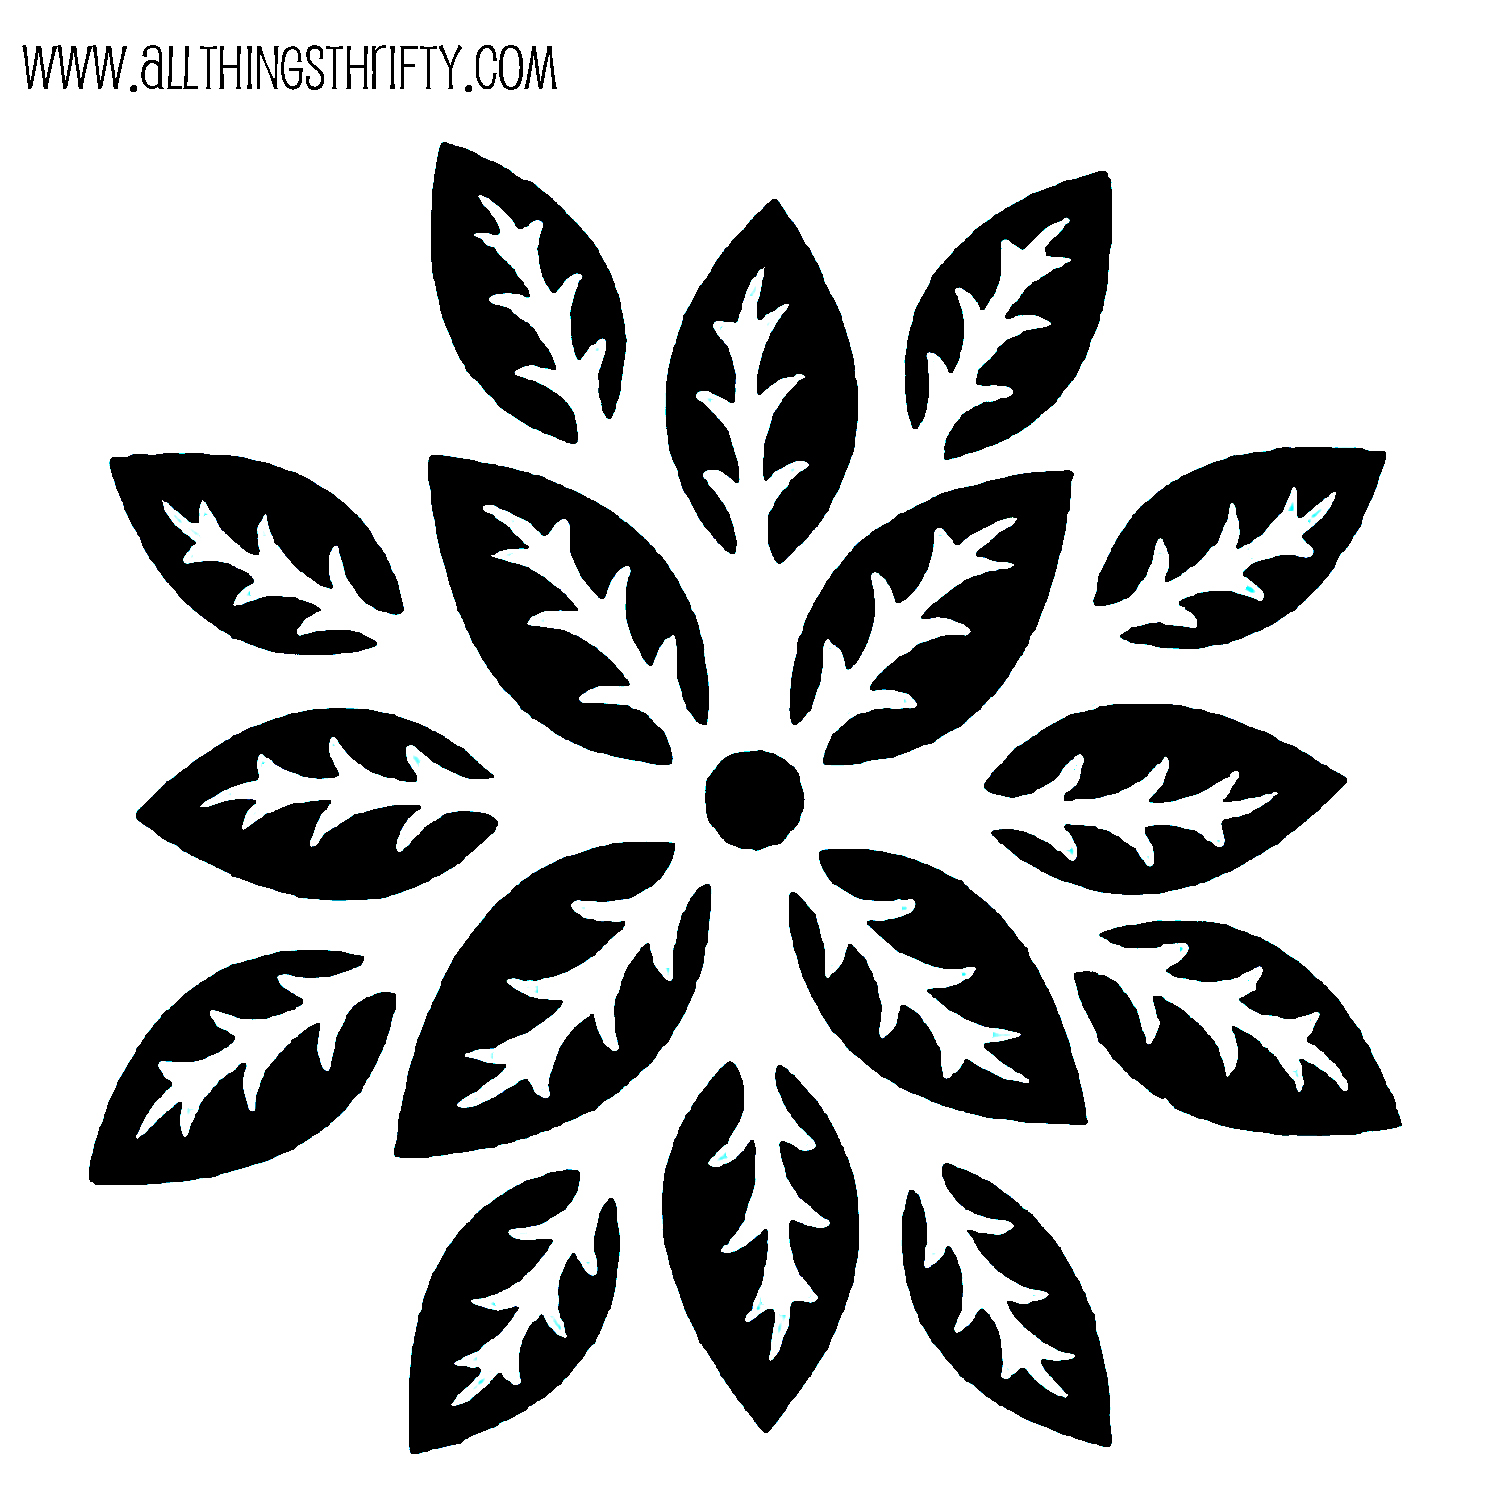 Stencil patterns just for you!